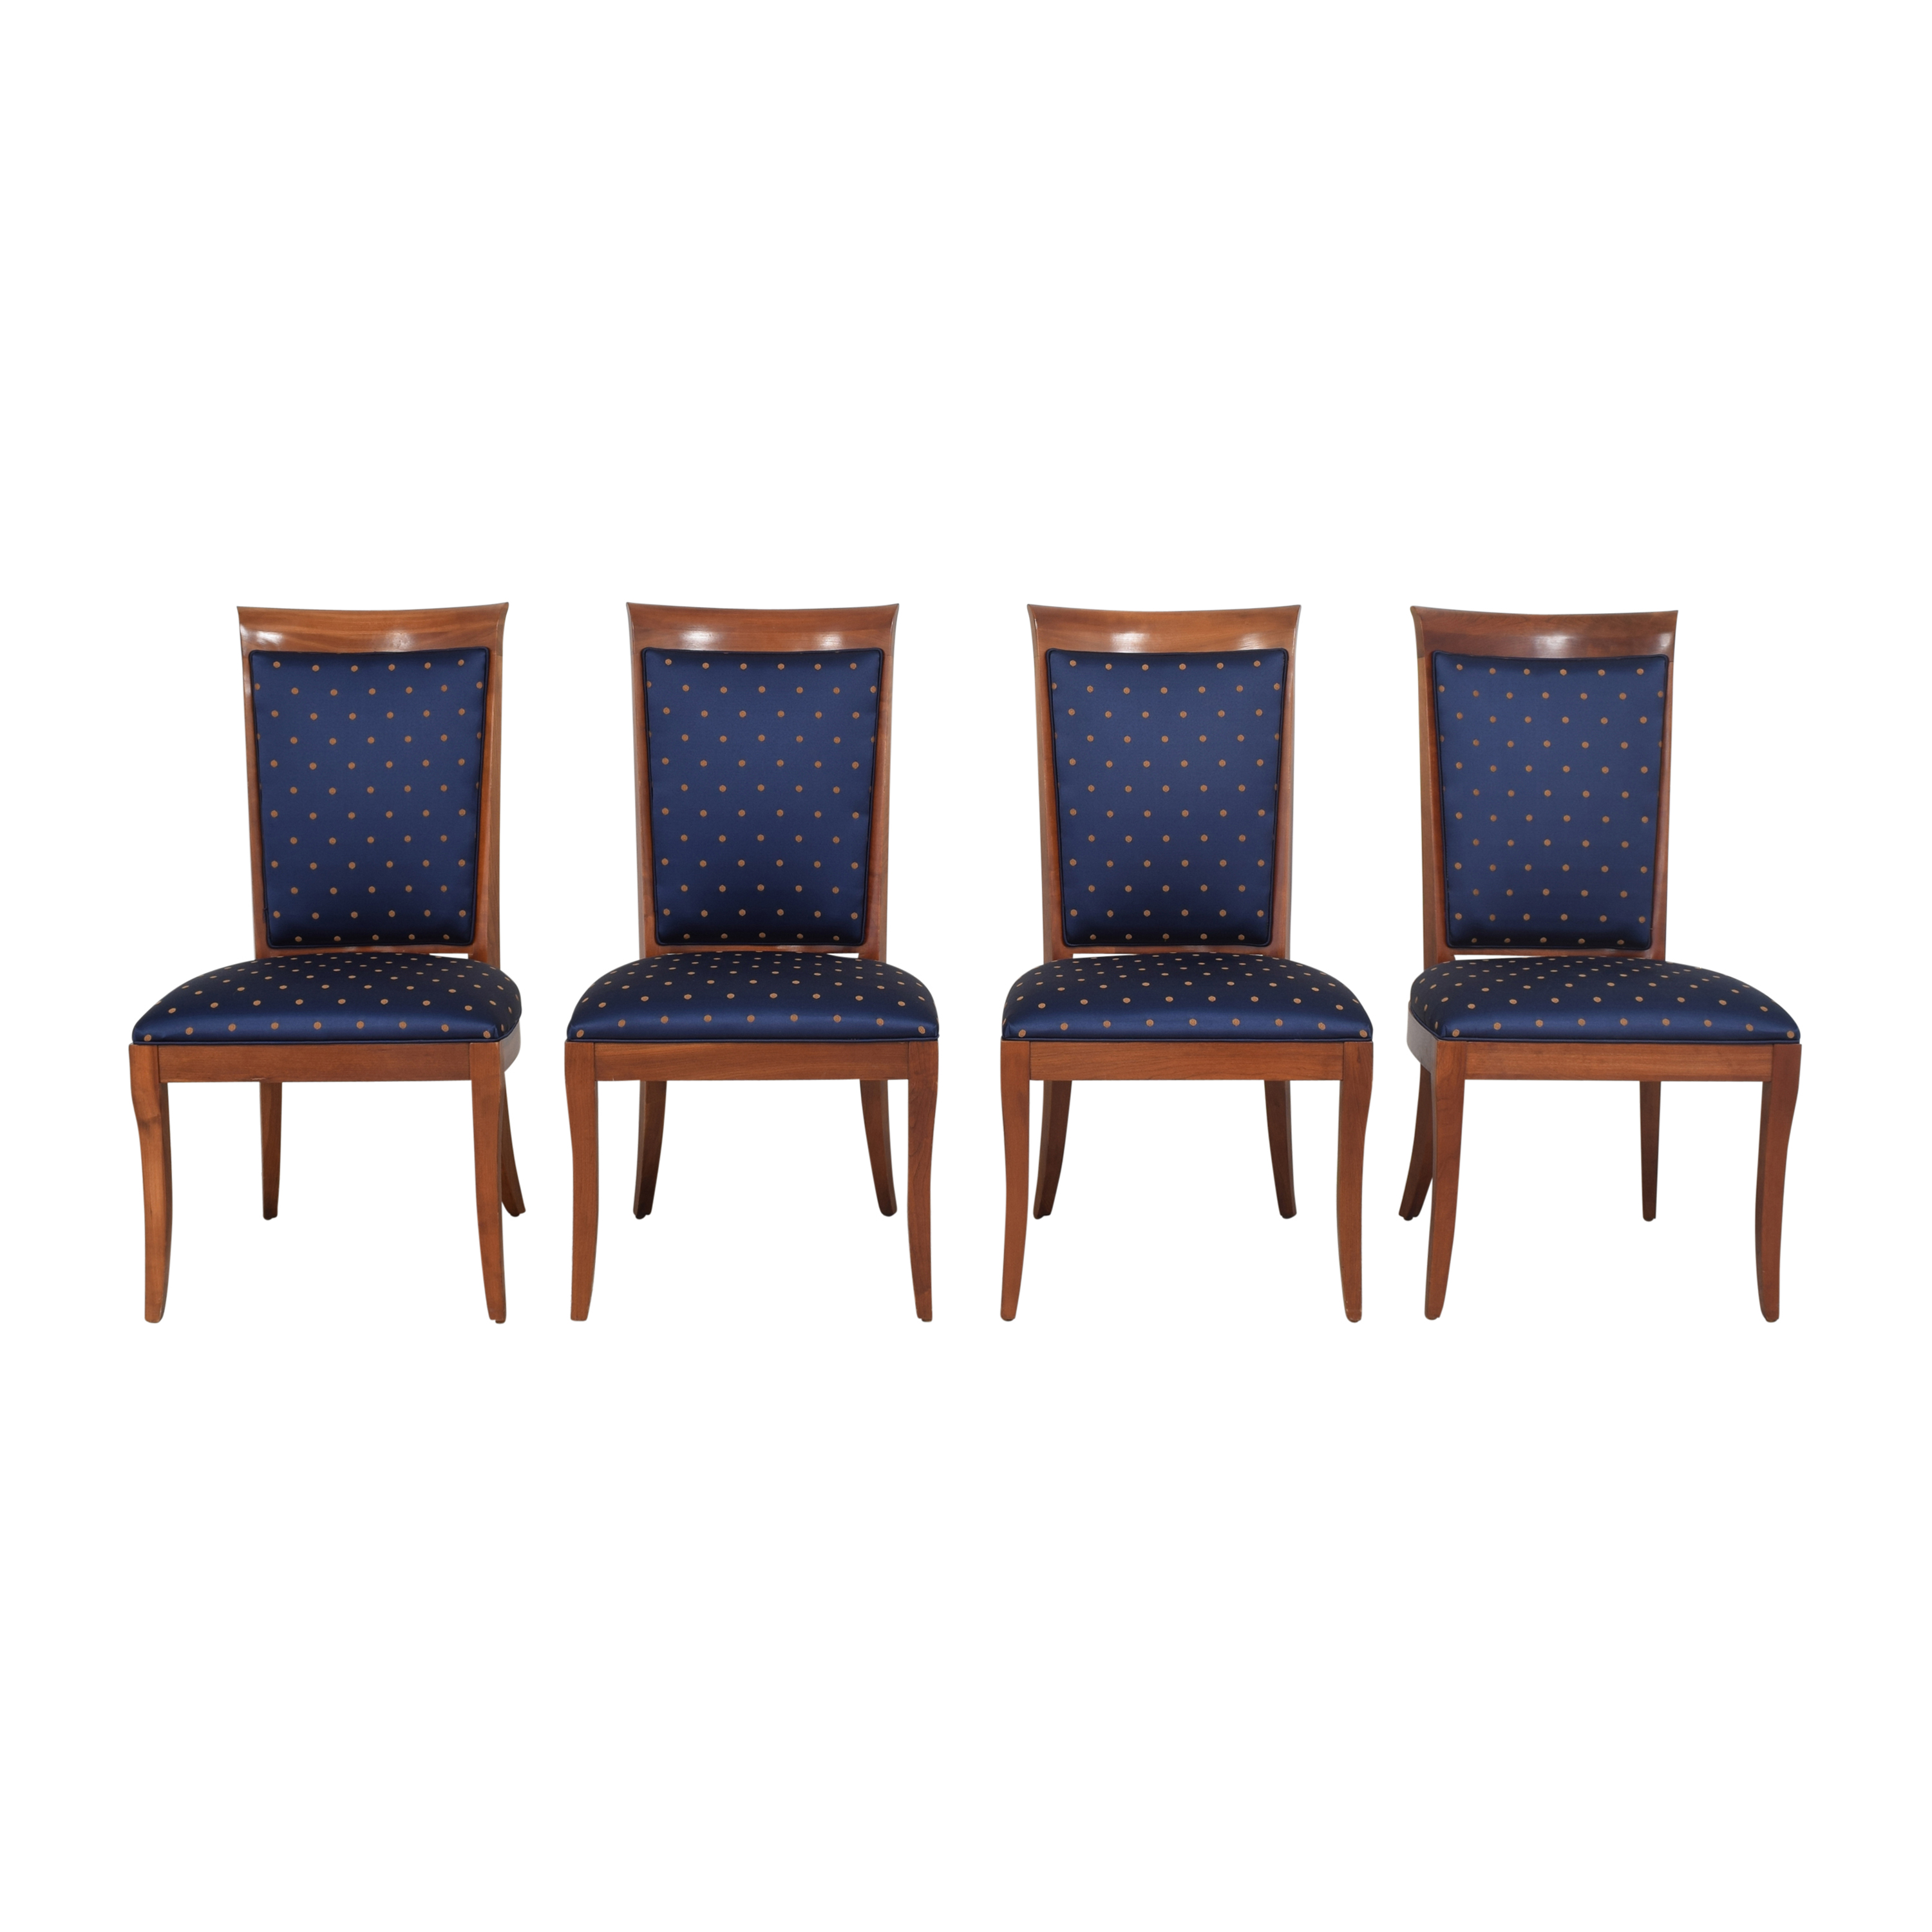 Ethan Allen Ethan Allen Medallion Collection Dining Side Chairs for sale